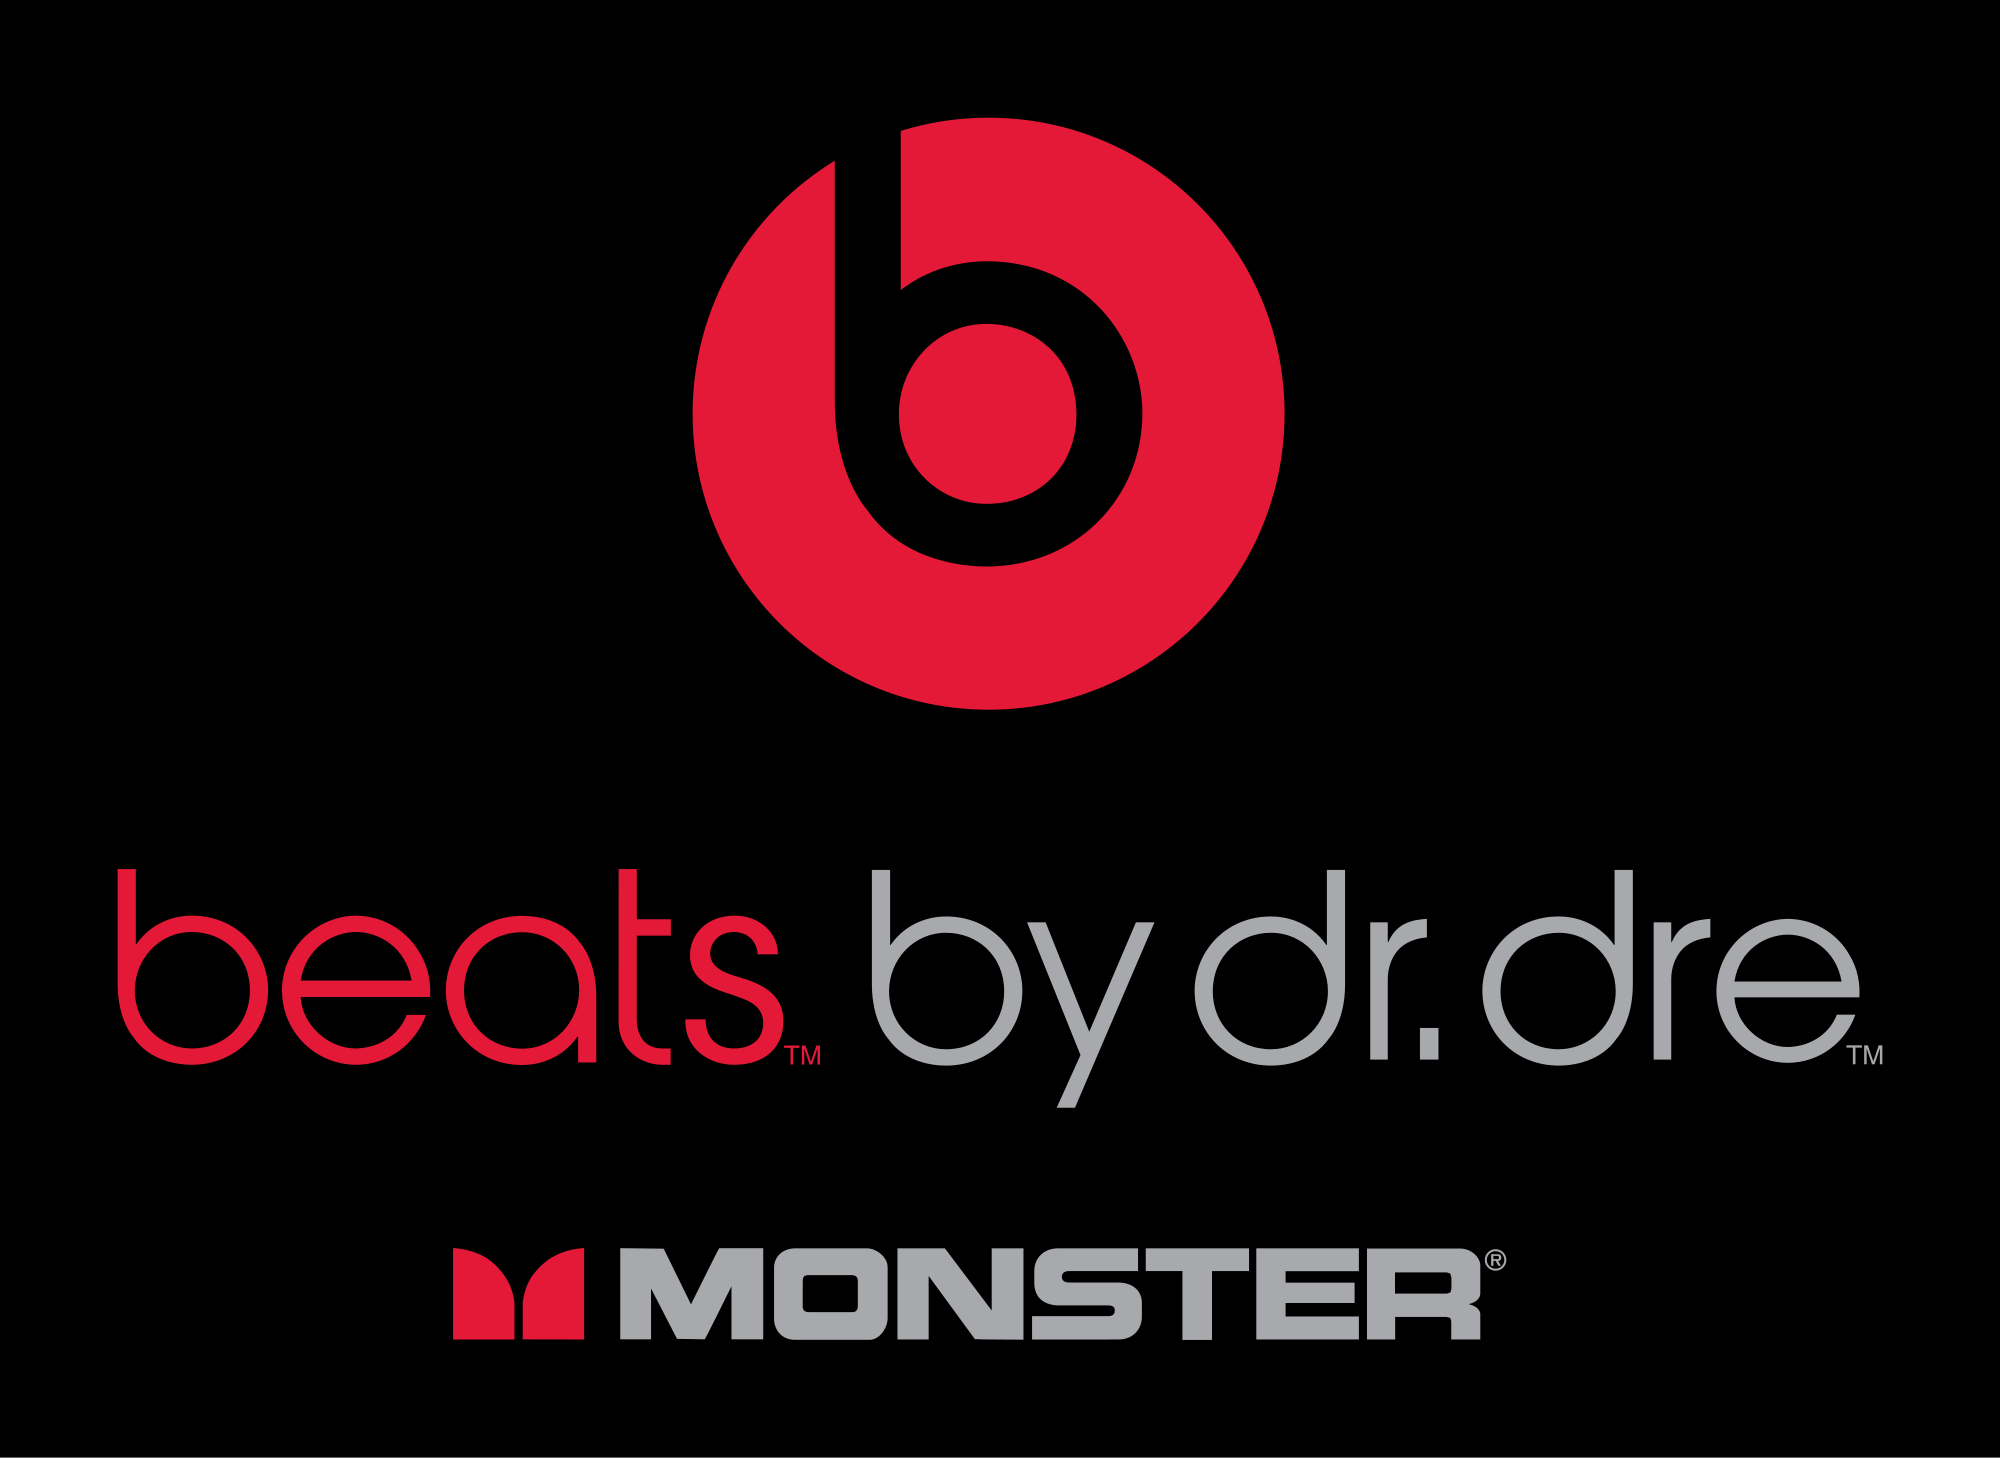 Beats Logo - File:Beats by Dr. Dre - logo.svg - Wikimedia Commons